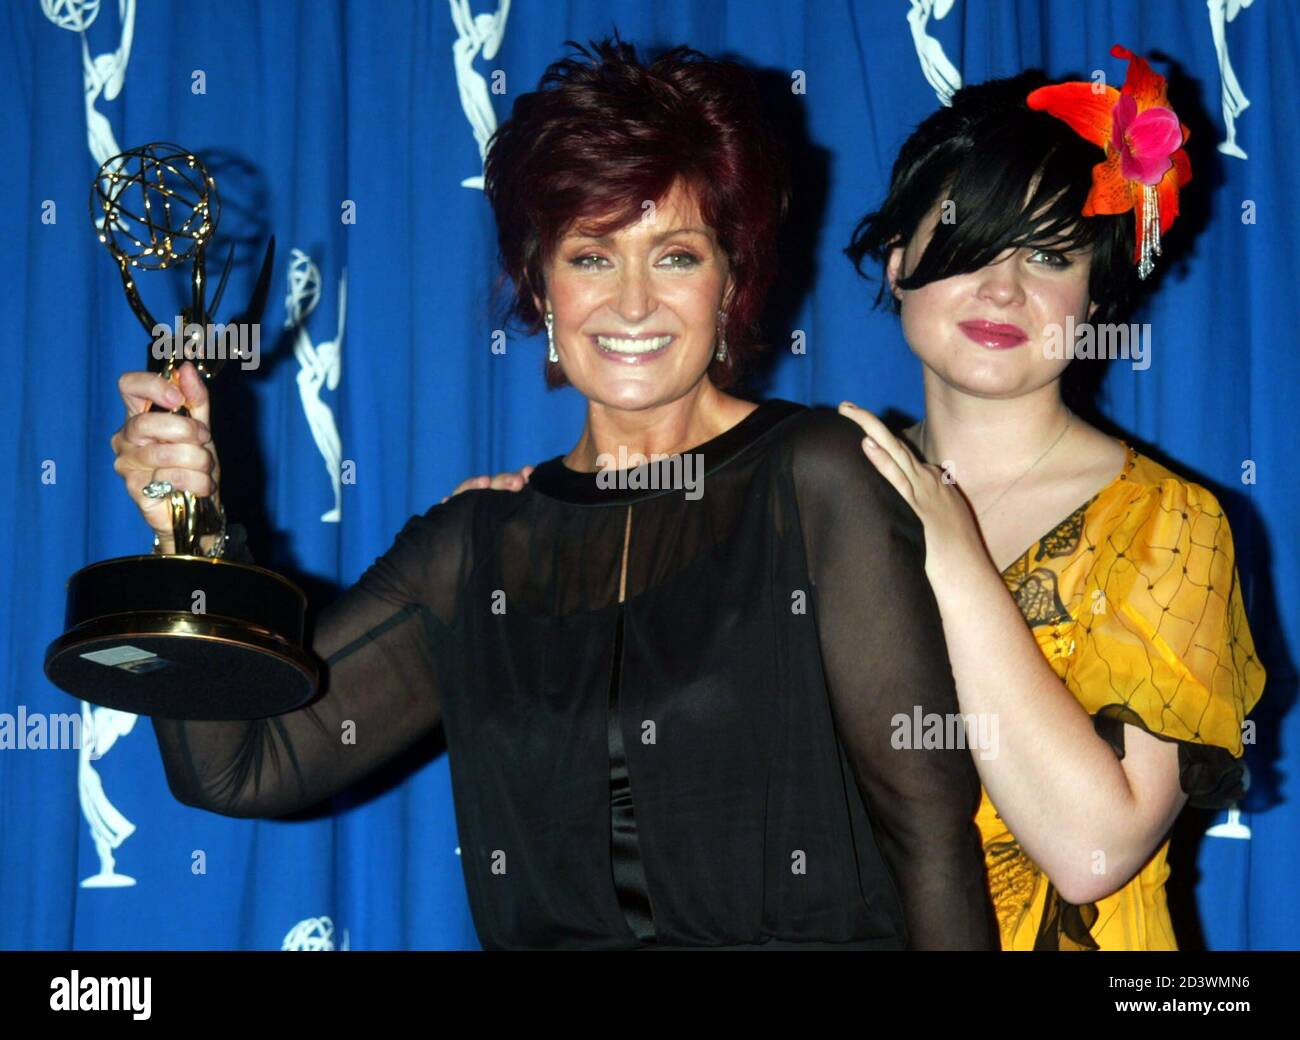 Rock Star Ozzy Osbourne High Resolution Stock Photography And Images Alamy